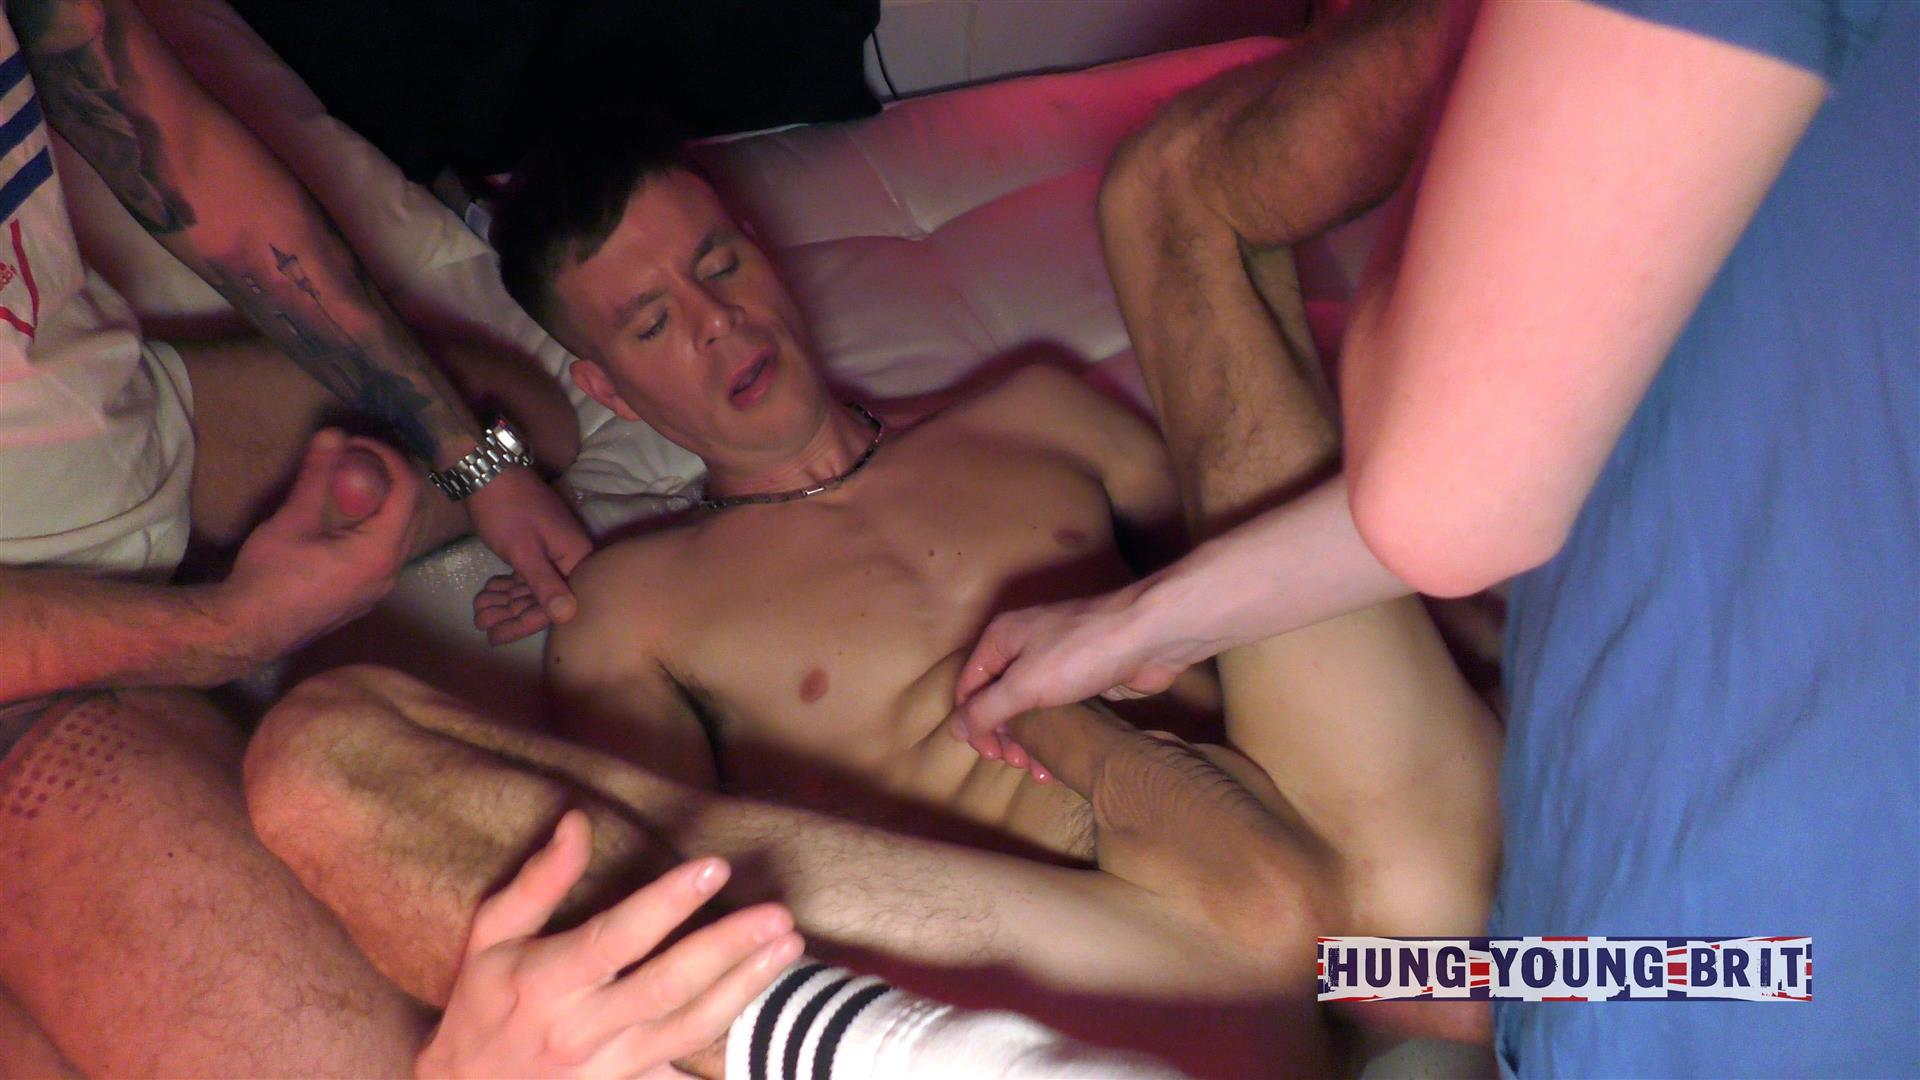 Hung-Young-Brit-Big-Uncut-Cock-Amatuer-Gay-Bareback-Sex-Party-04 3 Party Boys, Wanking, Sucking And Raw Fucking